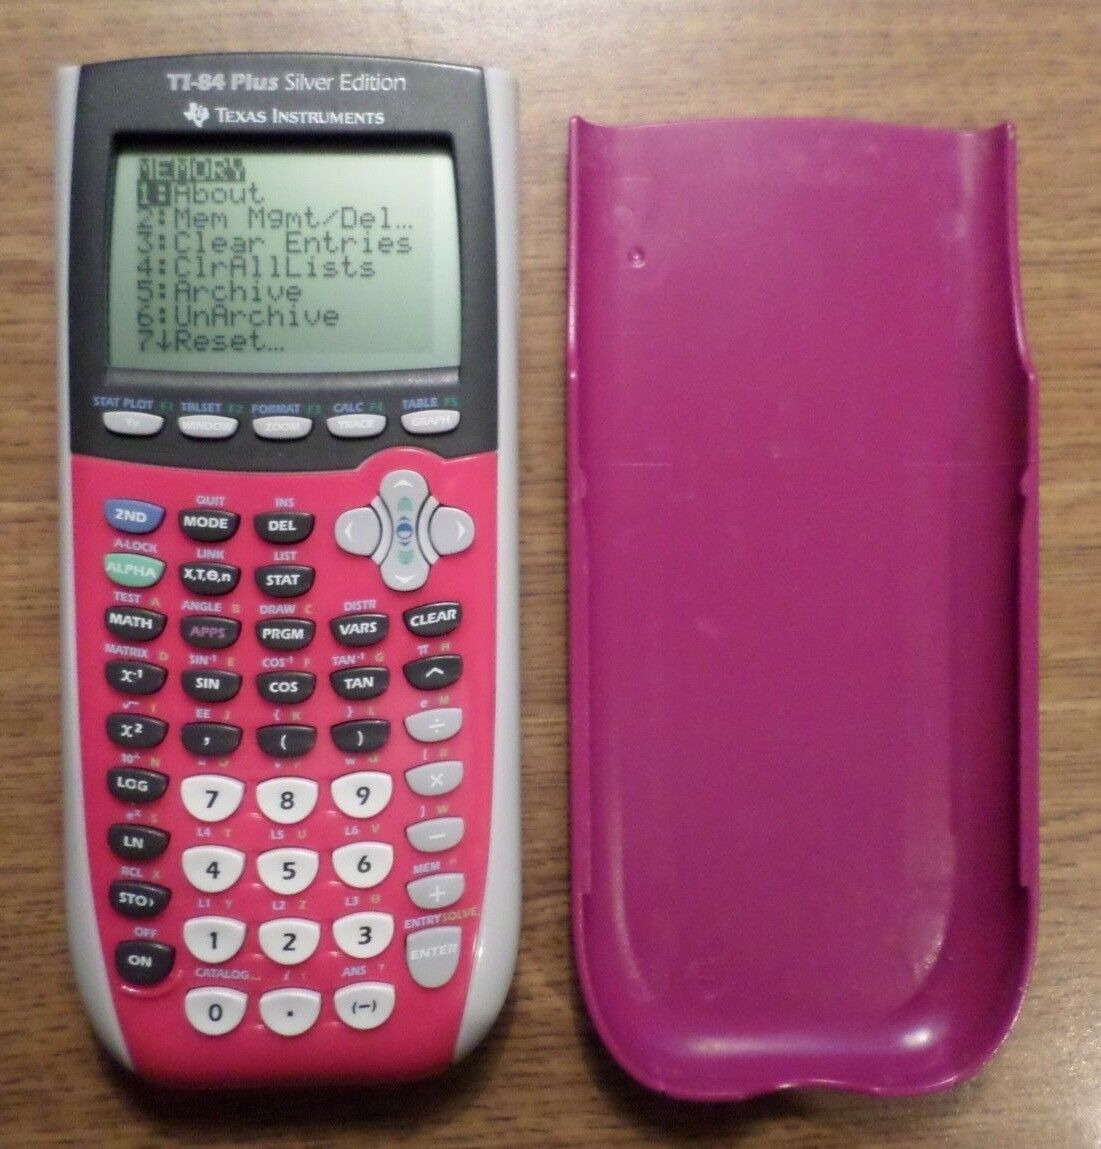 Texas Instruments TI-84 Plus Silver Edition Graphing Calculator 0311